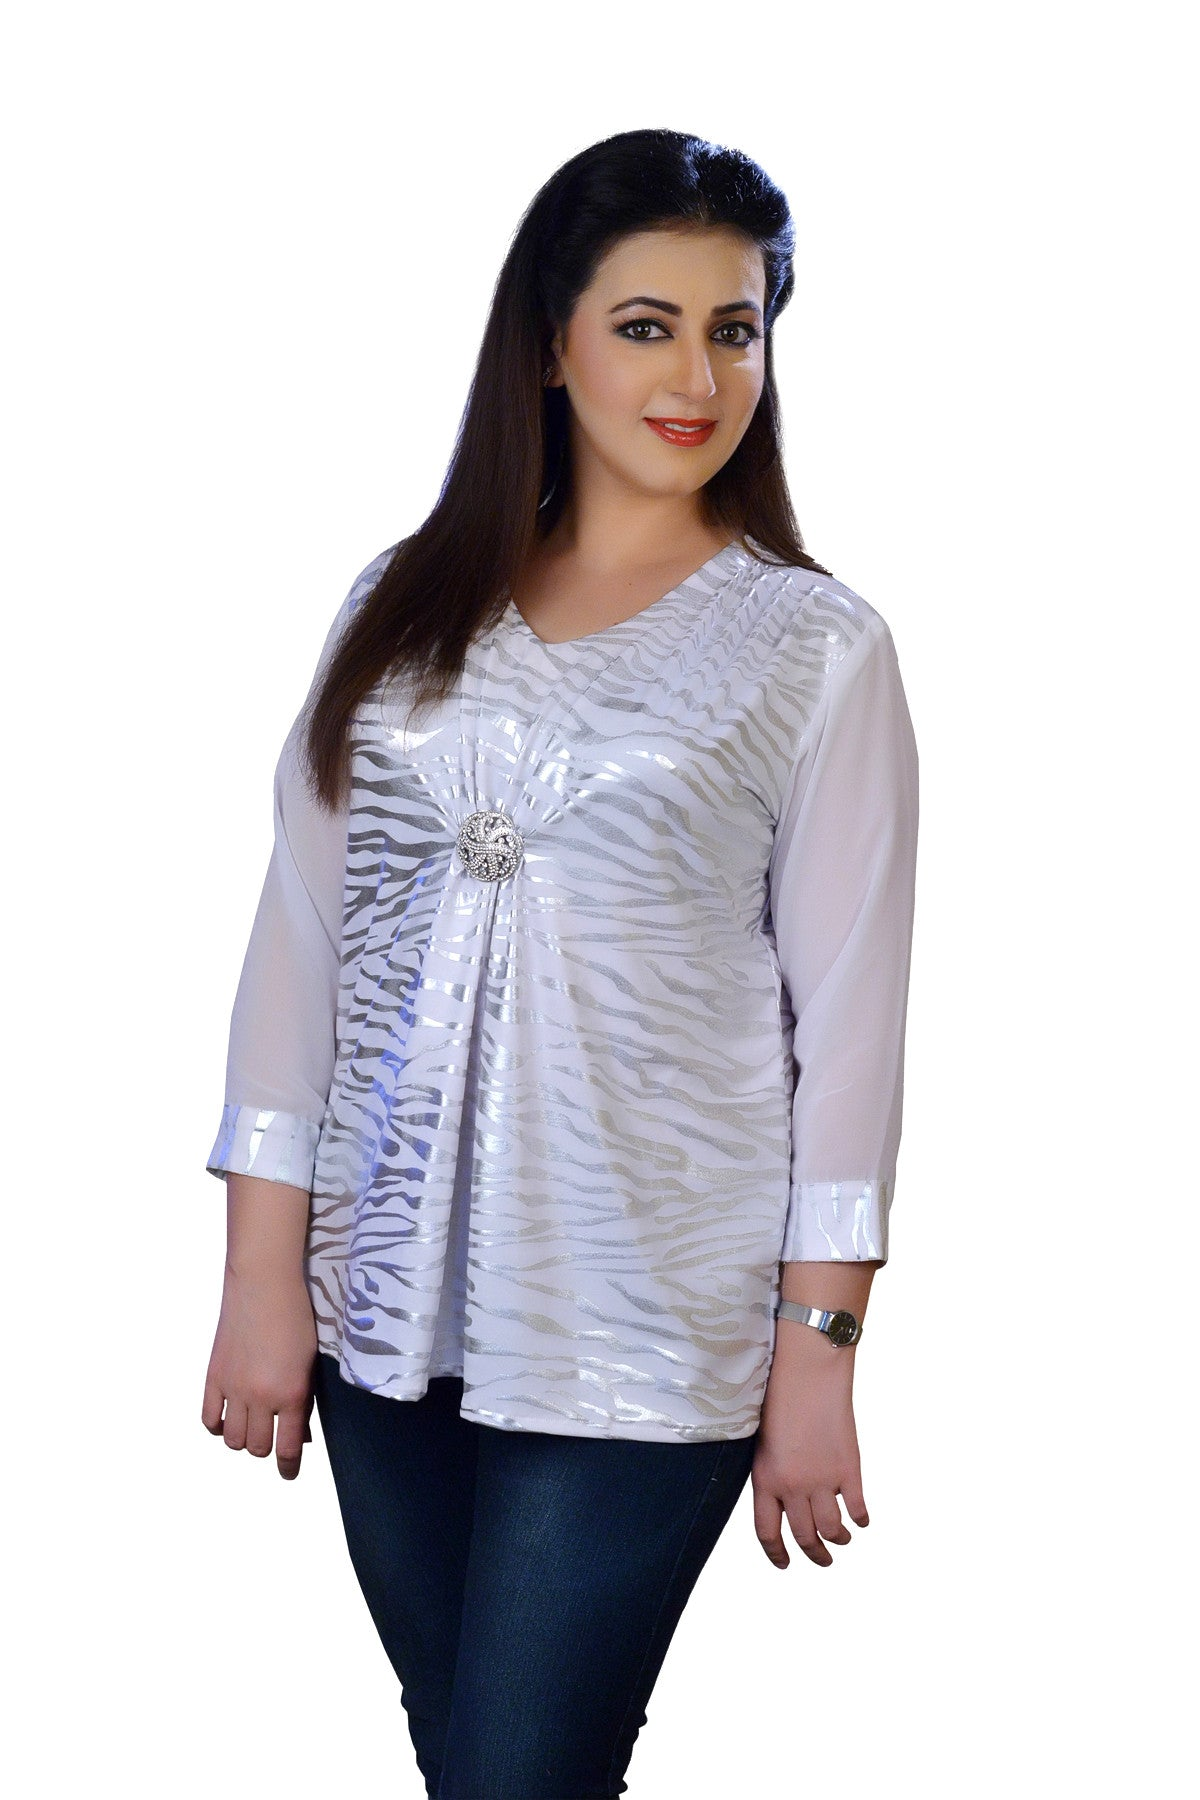 Find great deals on eBay for zebra print tops. Shop with confidence.